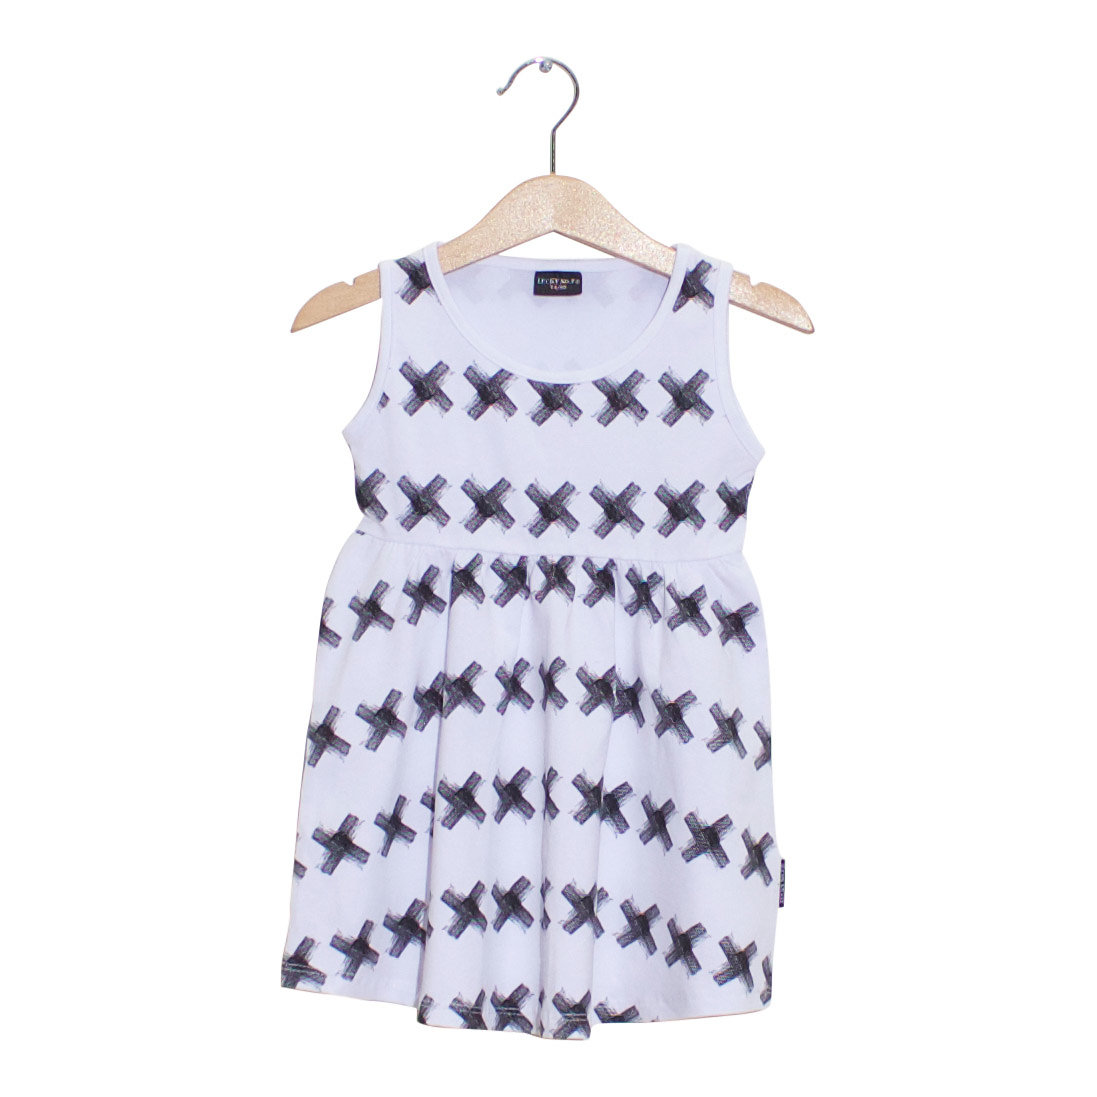 LUCKY NO. 7 | KRISS KROSS DRESS